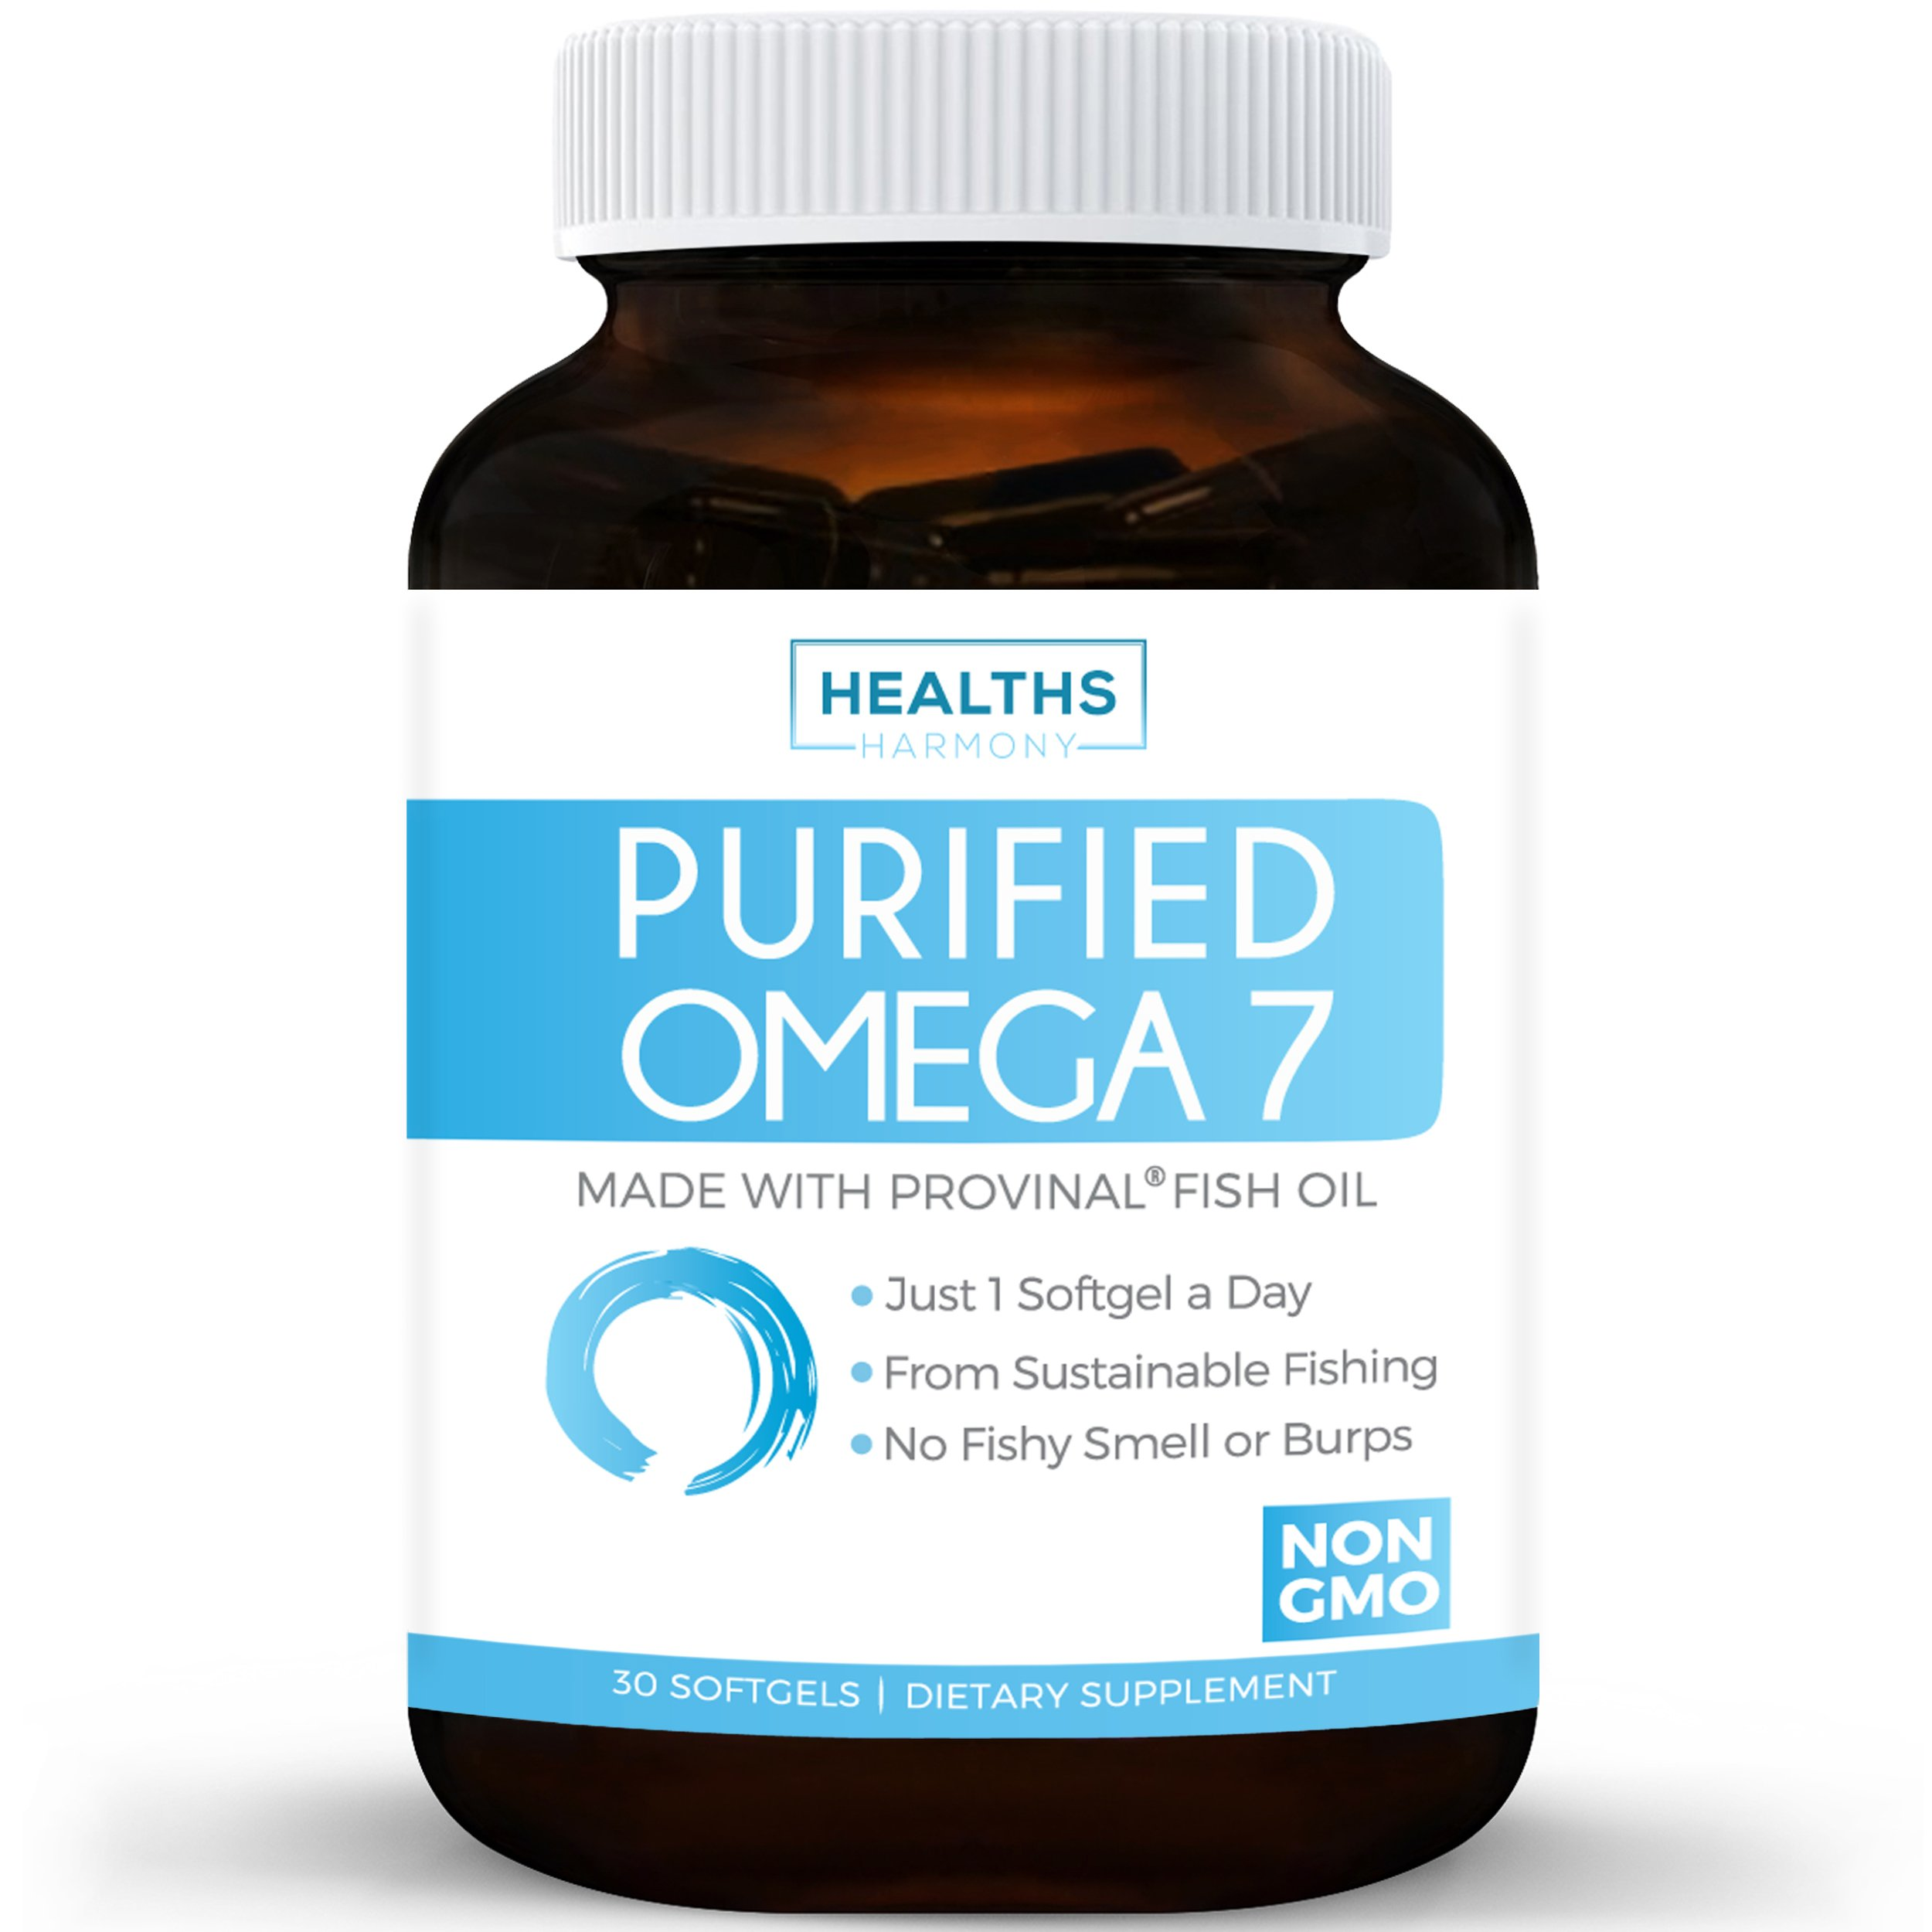 Best Purified Omega 7 Oil - Provinal Omega 7 (NON-GMO) All The Palmitoleic Acid EE Your Body Needs – High Potency One Month Supply - 100% Money Back Guarantee - Made From Peruvian Anchovy Fish